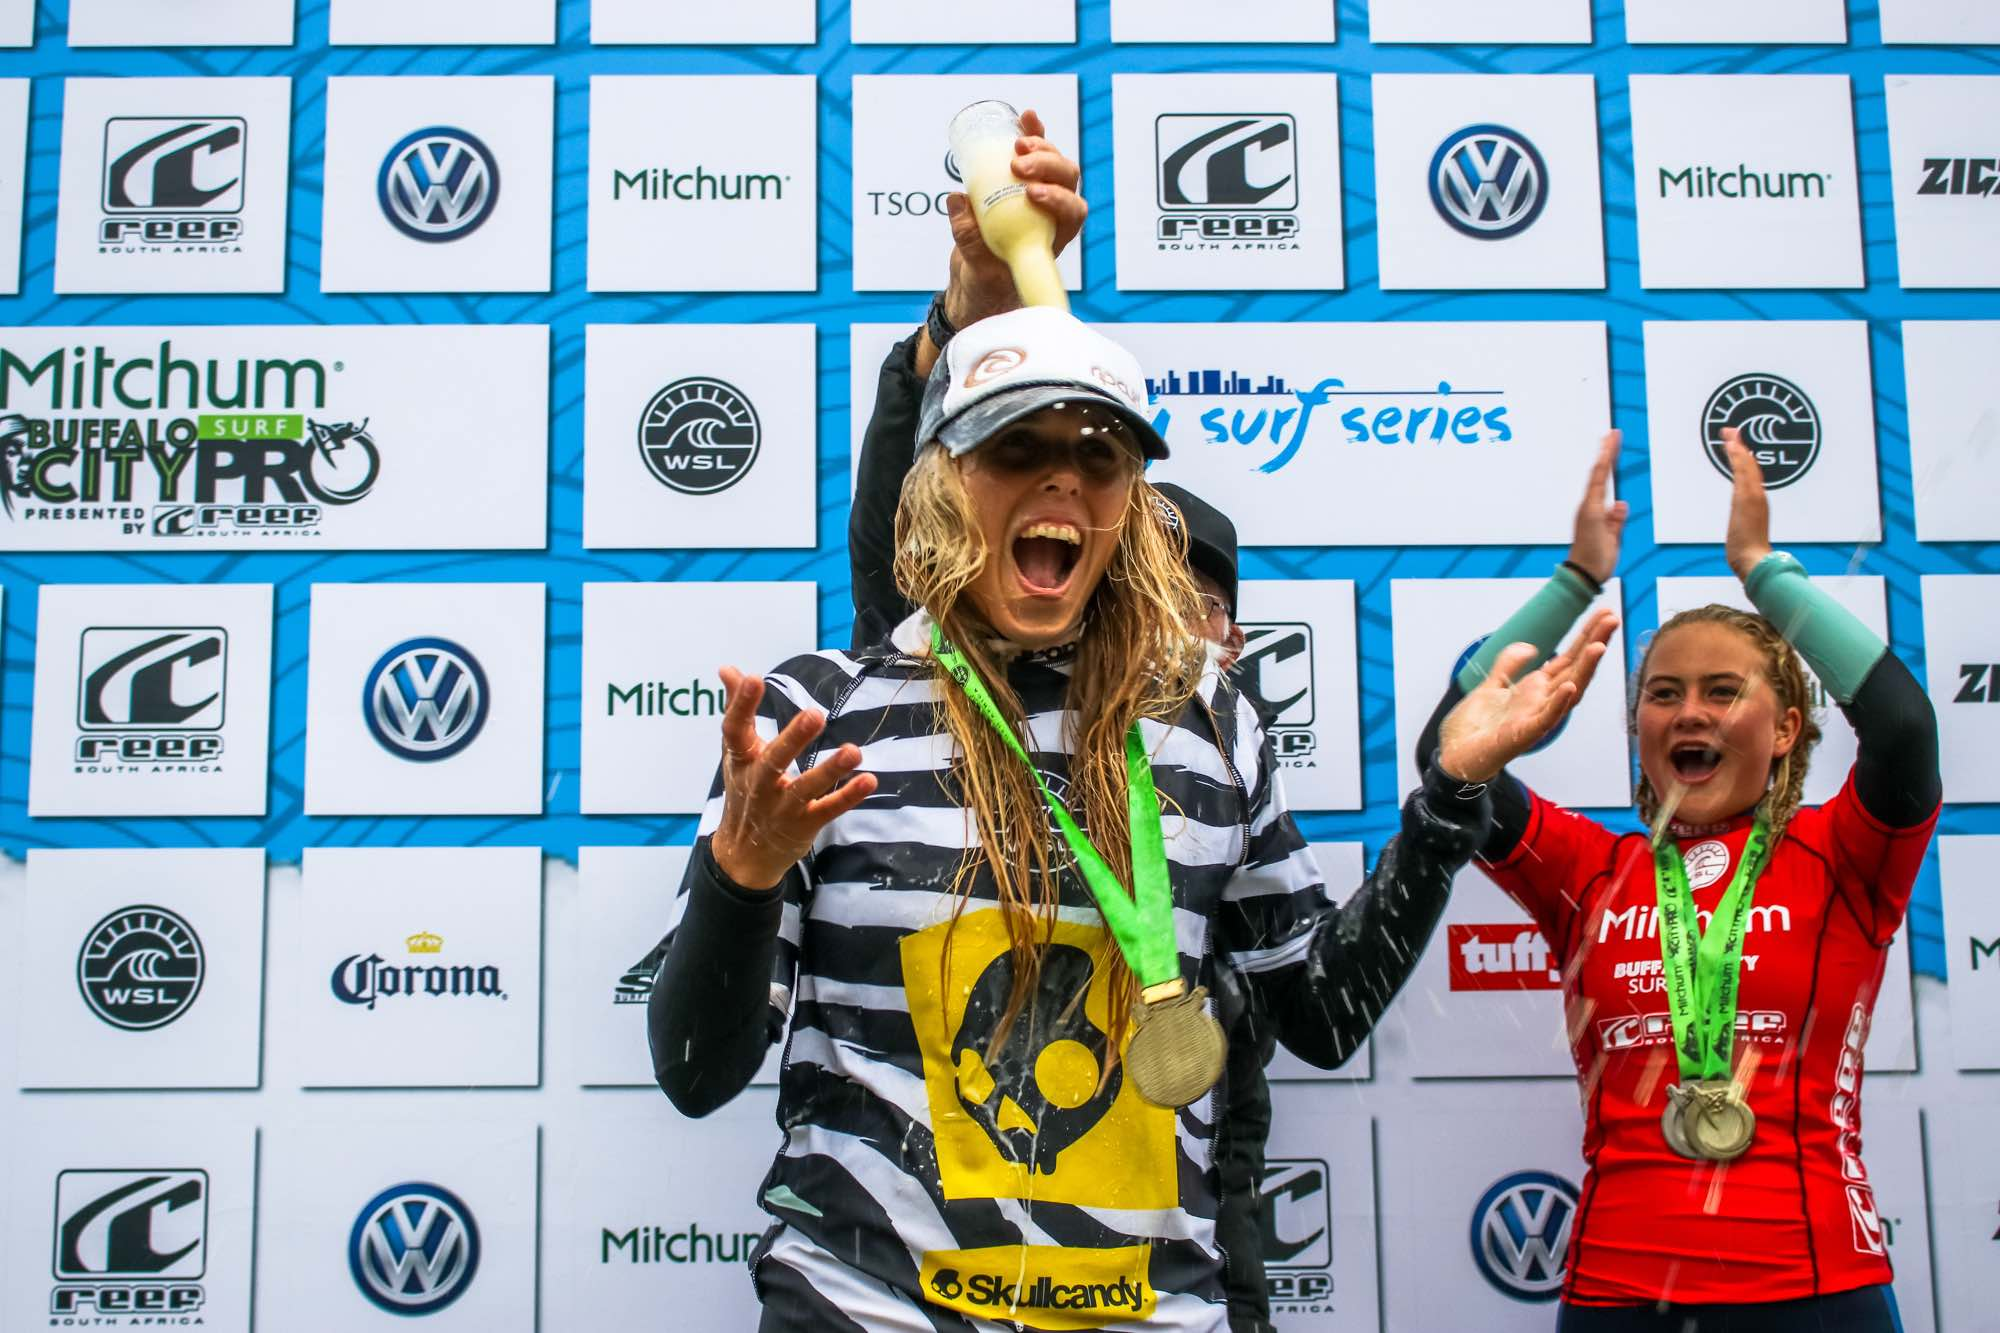 Mitchum Buffalo City Surf Pro Women's Podium